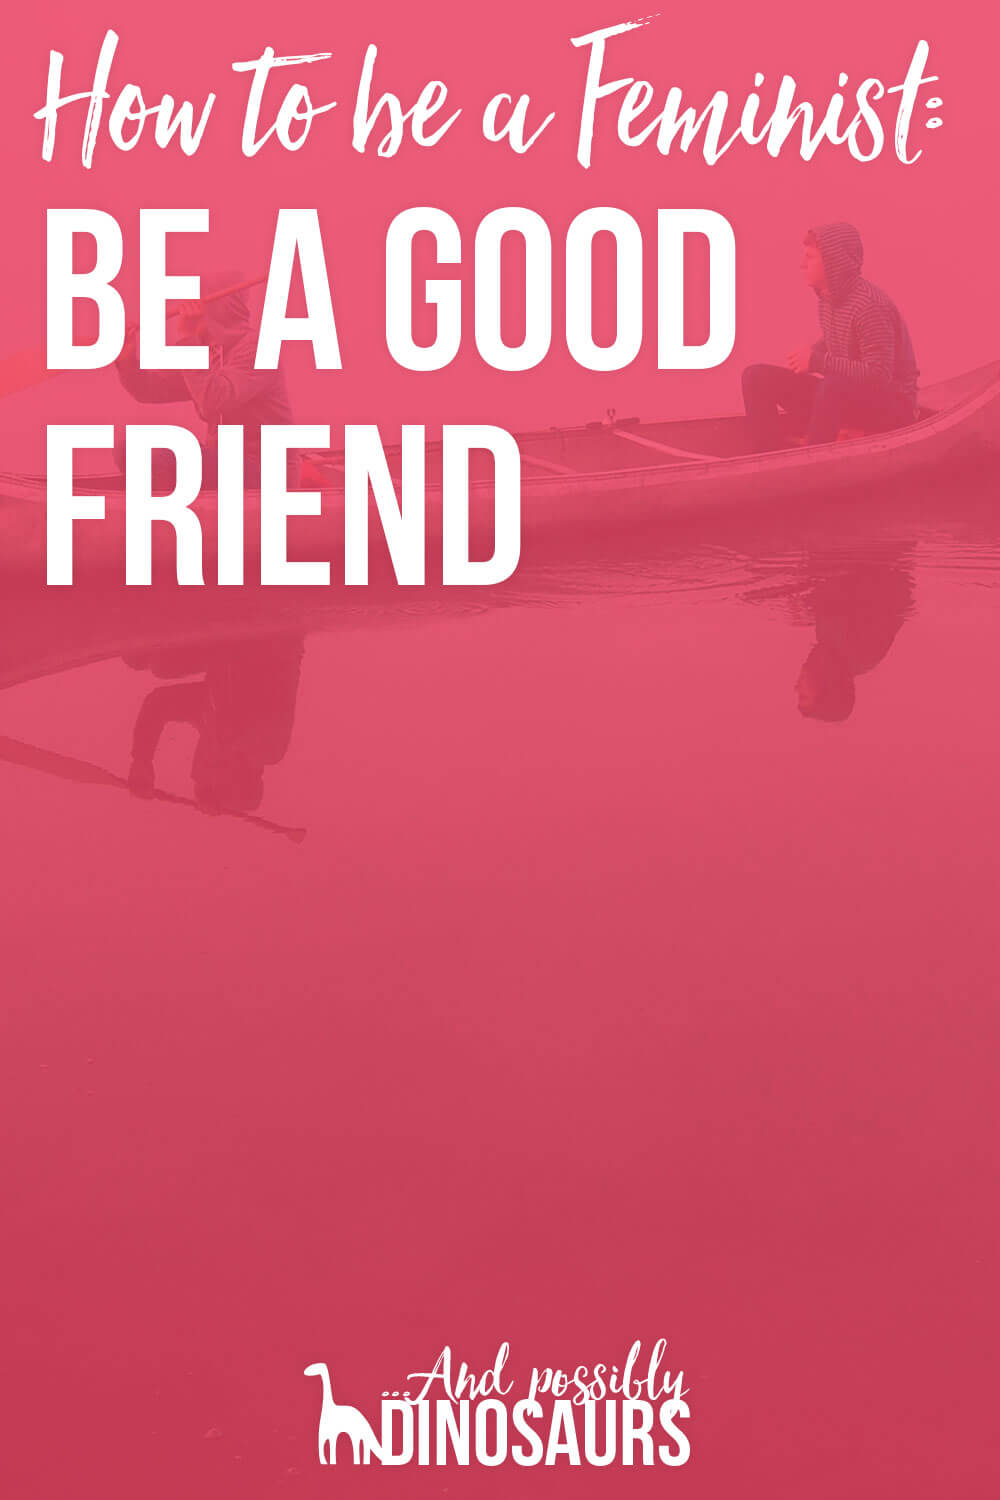 Being a feminist means being a good friend. Sounds really easy, right? Be a good friend! Well, sometimes it isn't as easy it sounds. Click through to learn how to be a good friend!